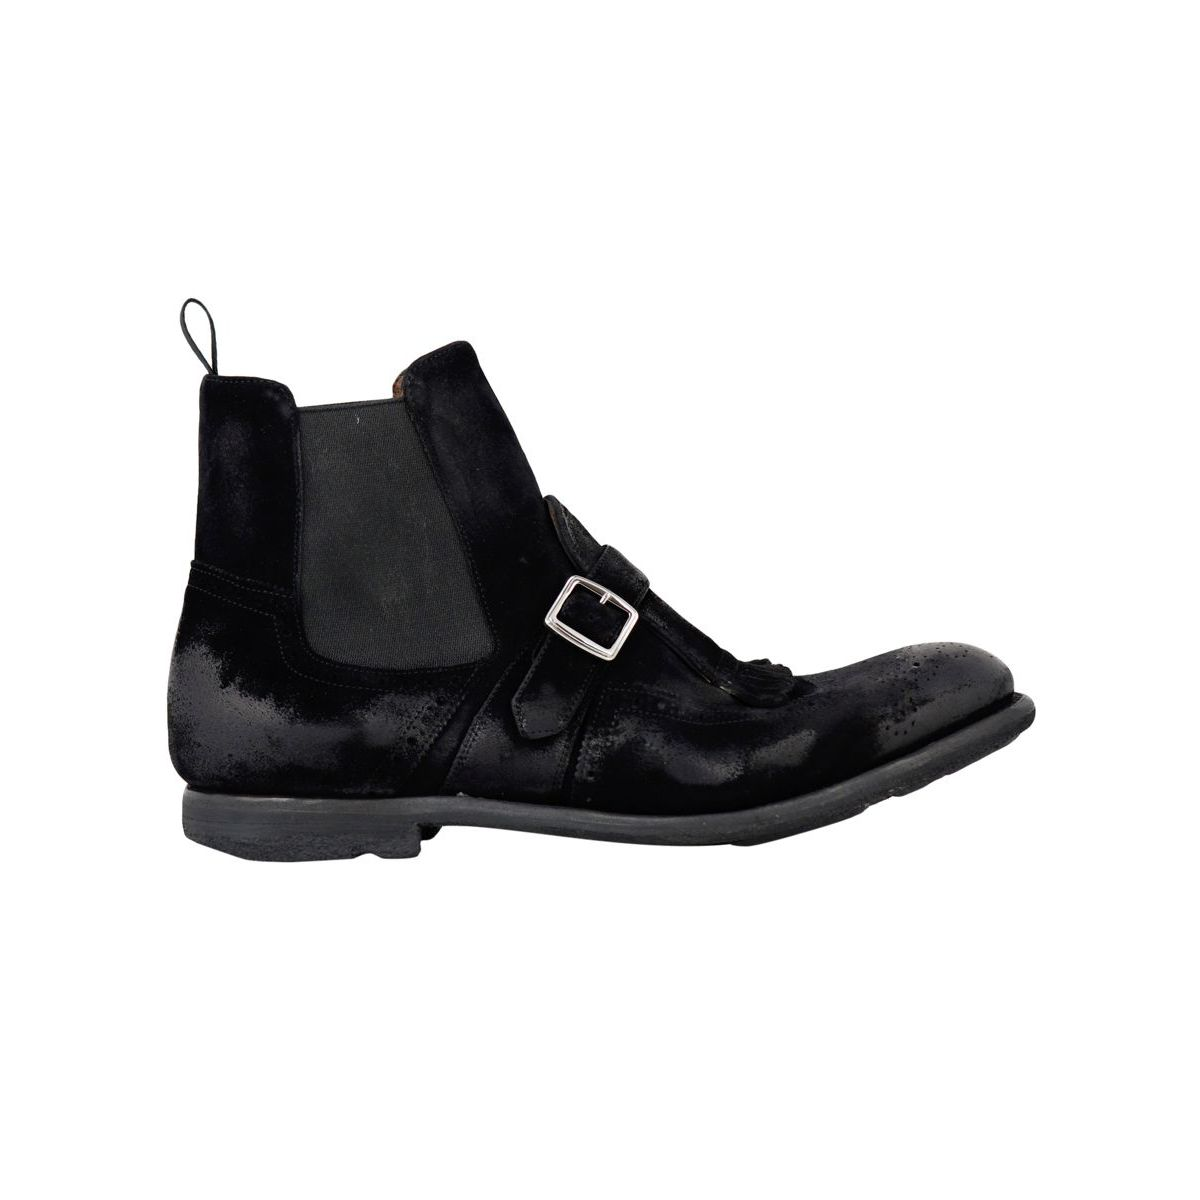 SHANGHAI 6 boot in vintage suede leather Black Church's